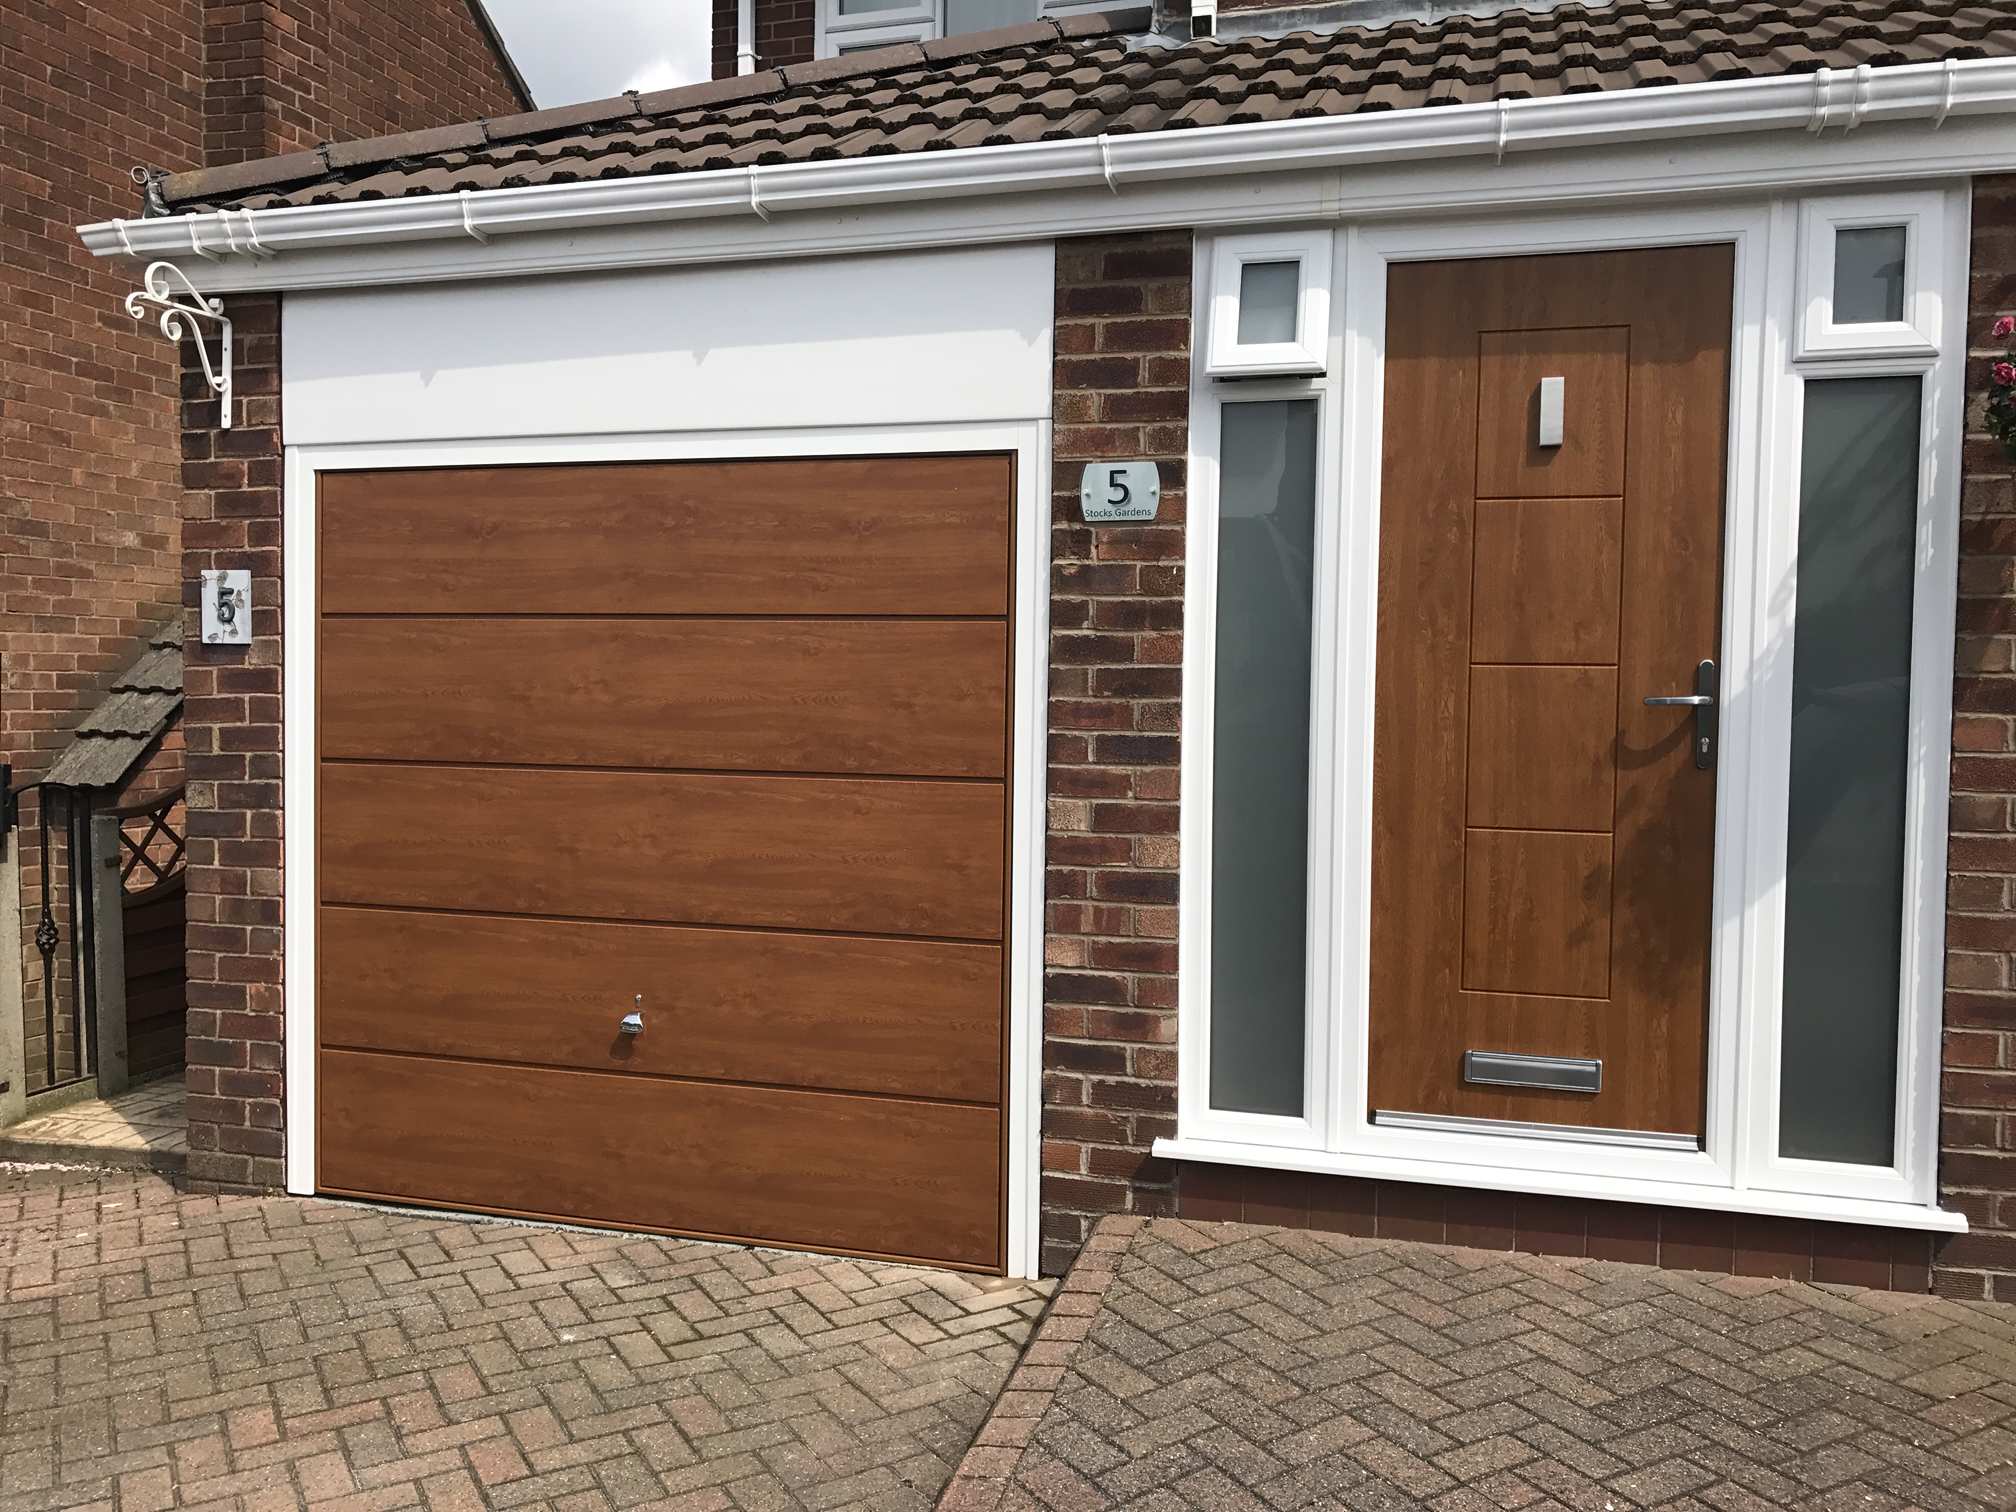 Hormann Garage Door Stalybridge Pennine Garage Doors